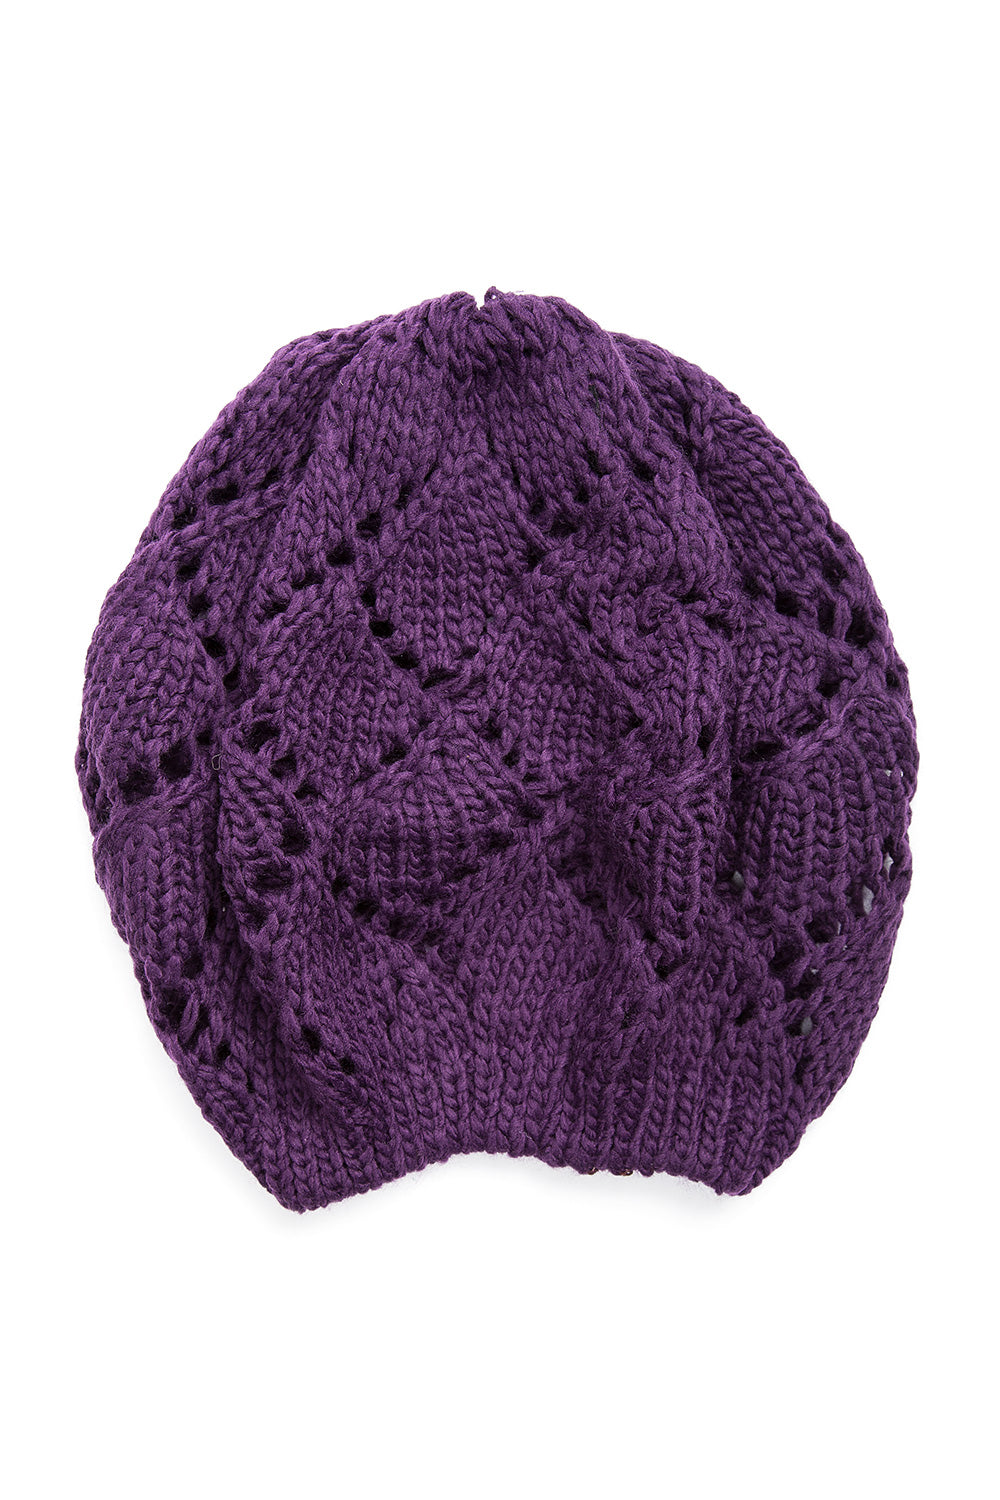 Type 2 Berry Beret Hat